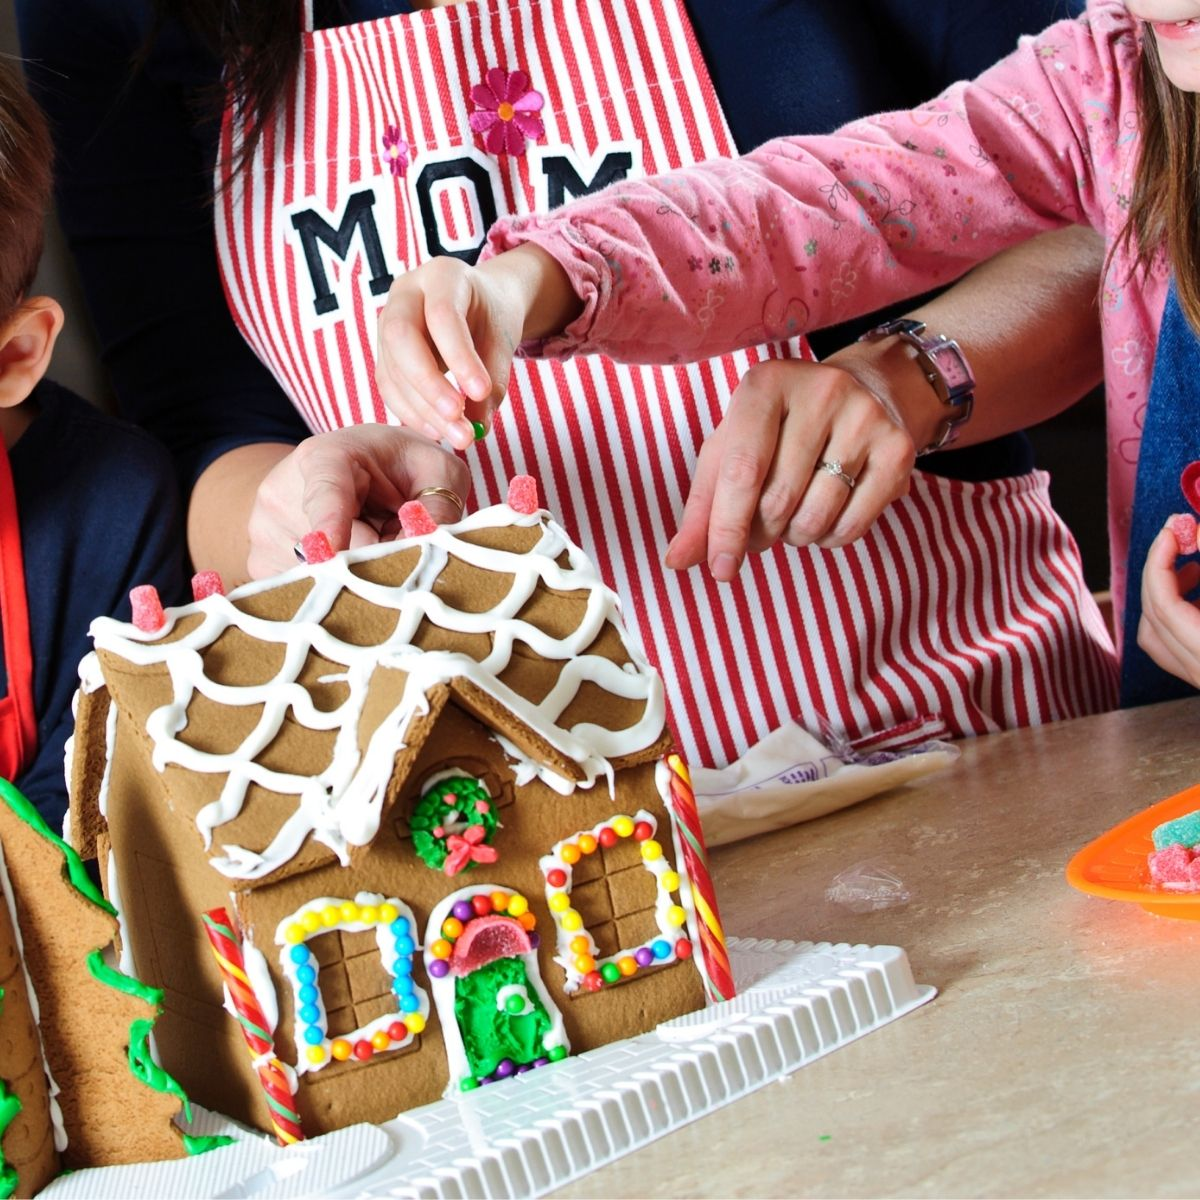 Kids and mom decorating a gingerbread house